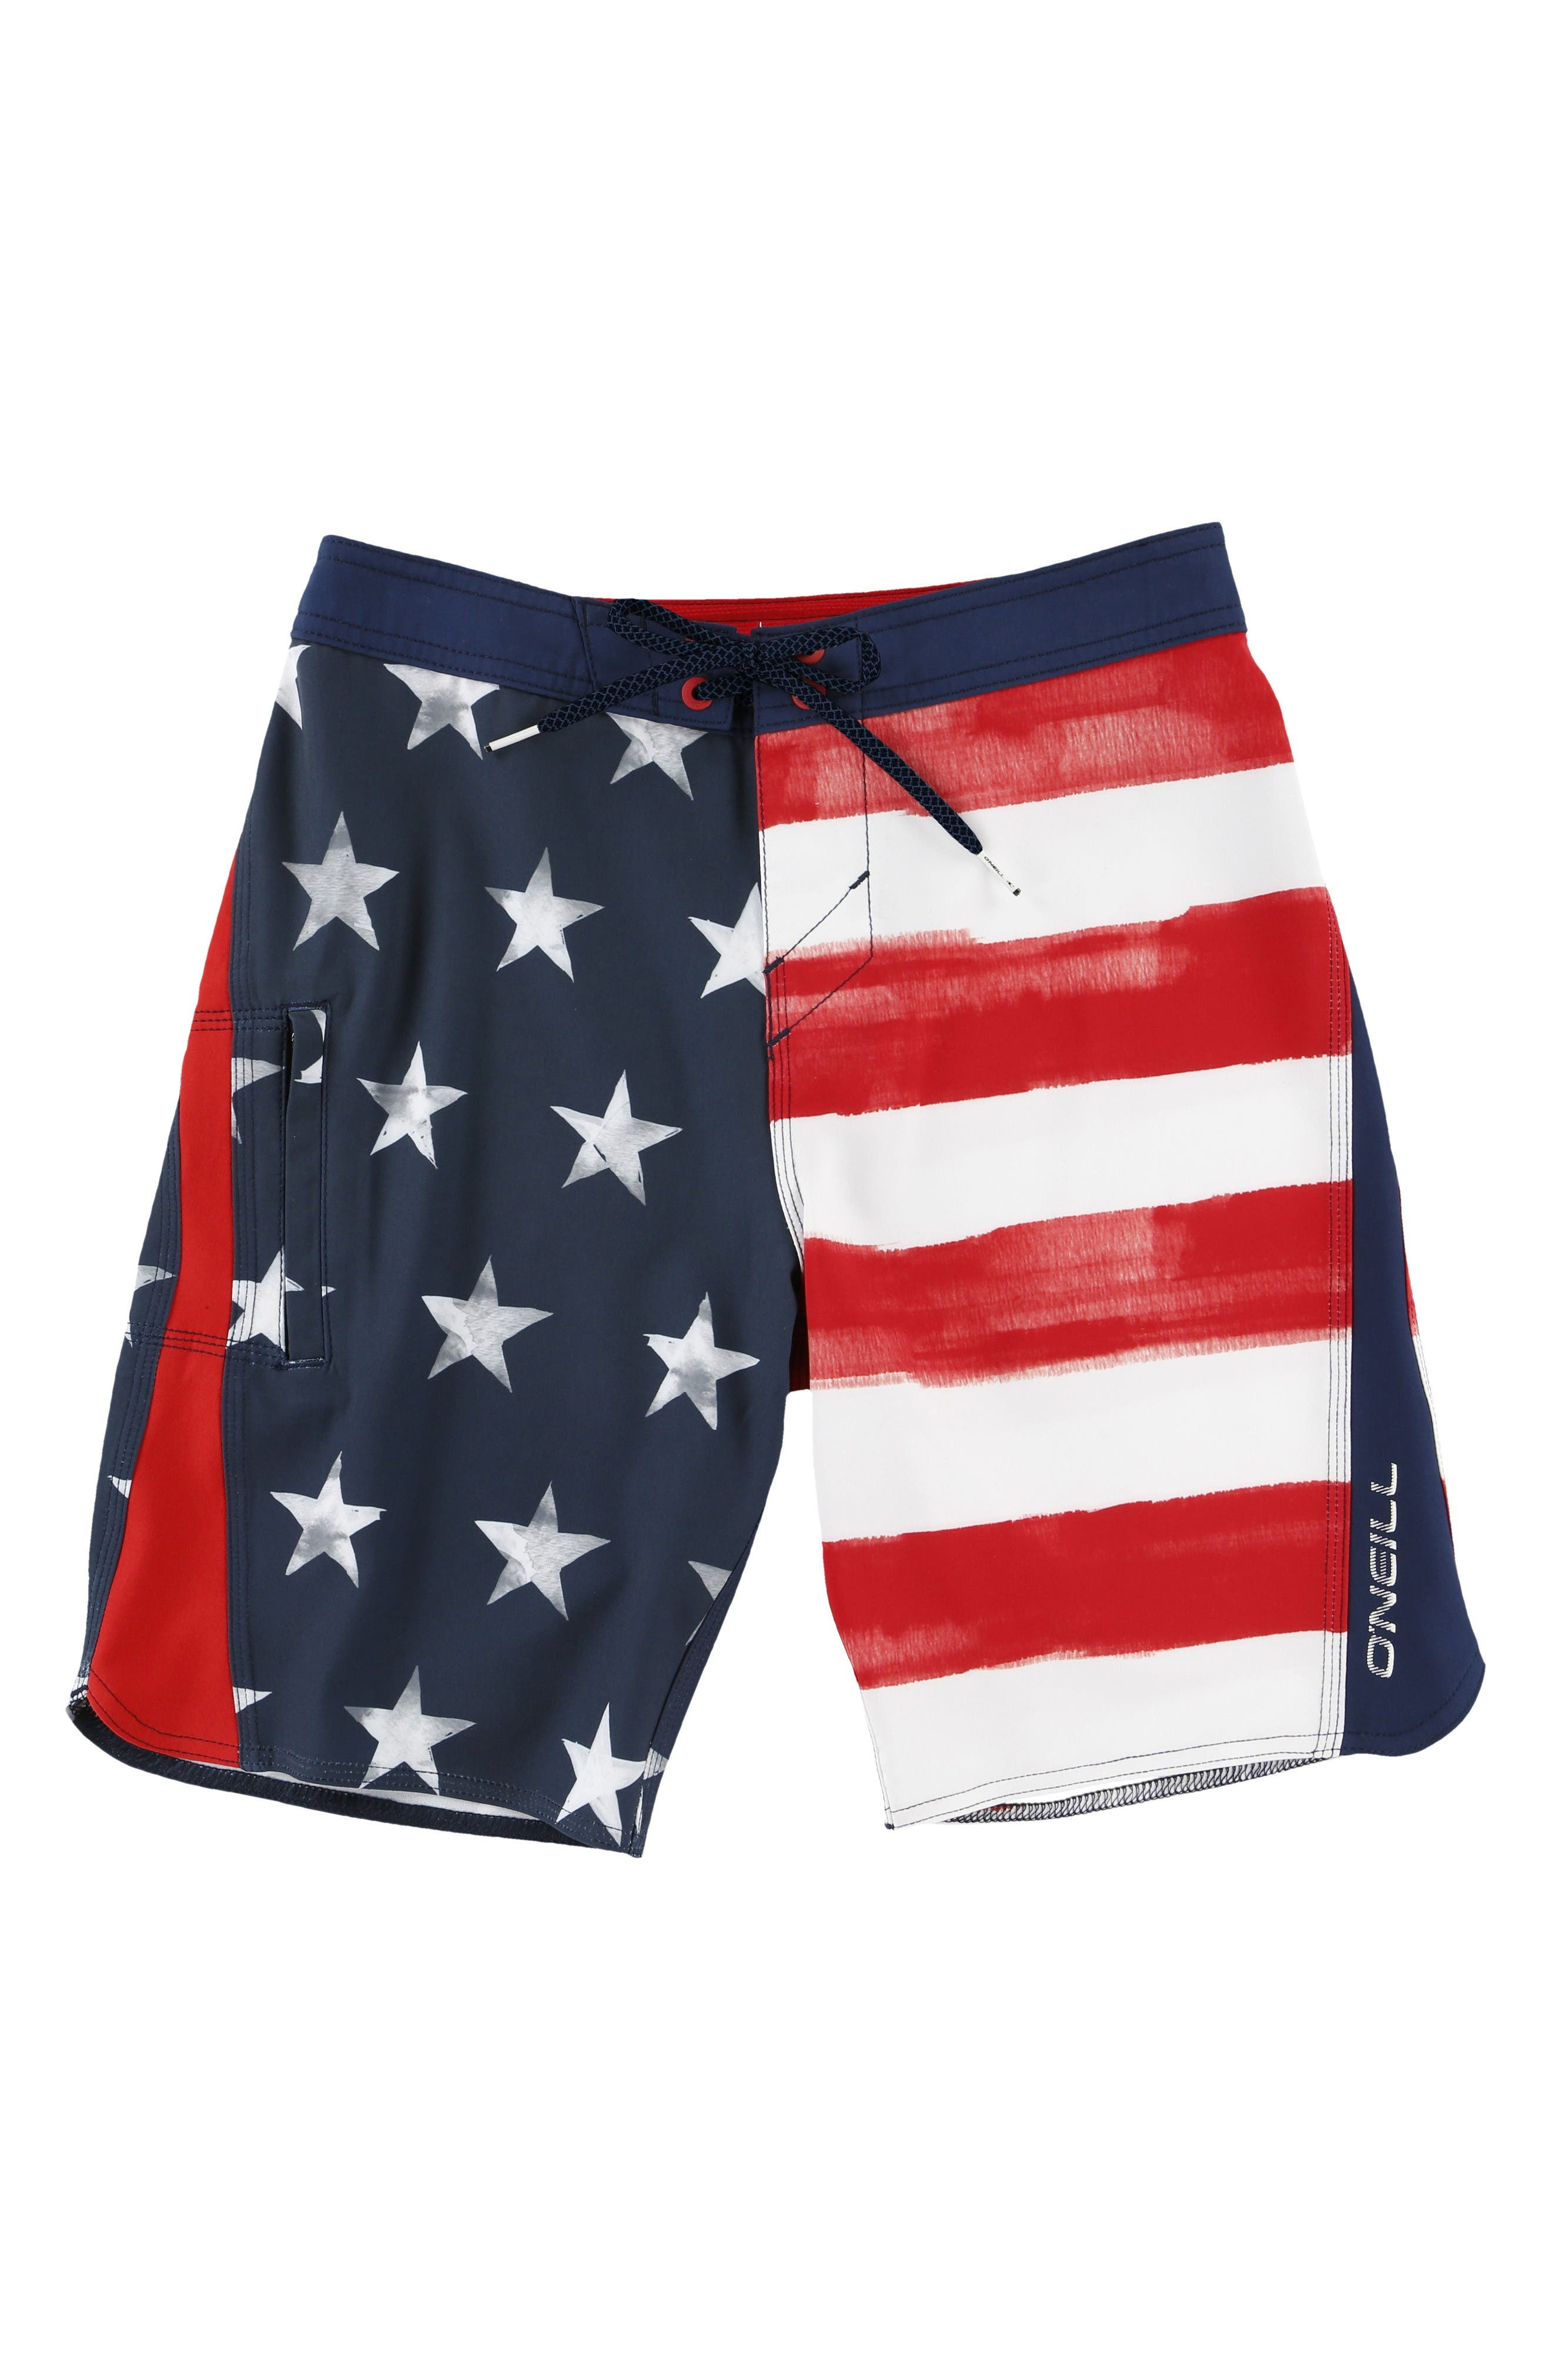 O'Neill Sneakyfreak Scallop Board Shorts (Toddler Boys, Little Boys & Big Boys)